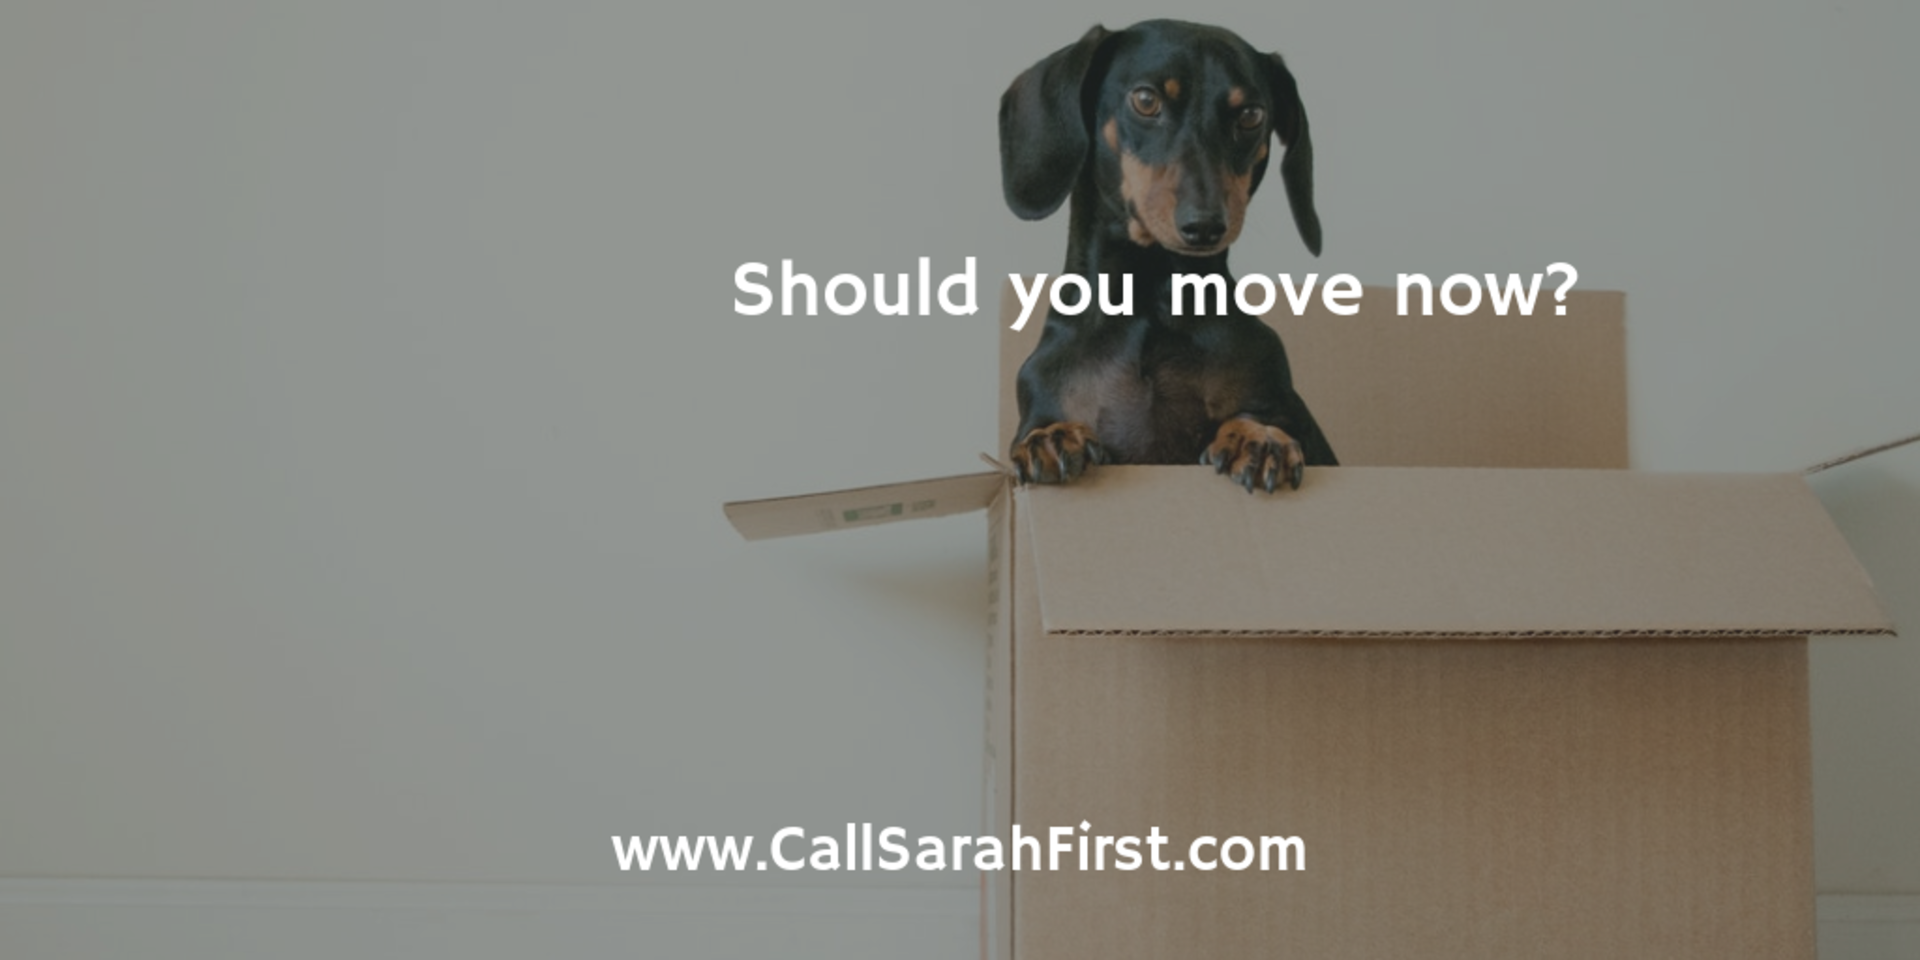 Should you move right now?